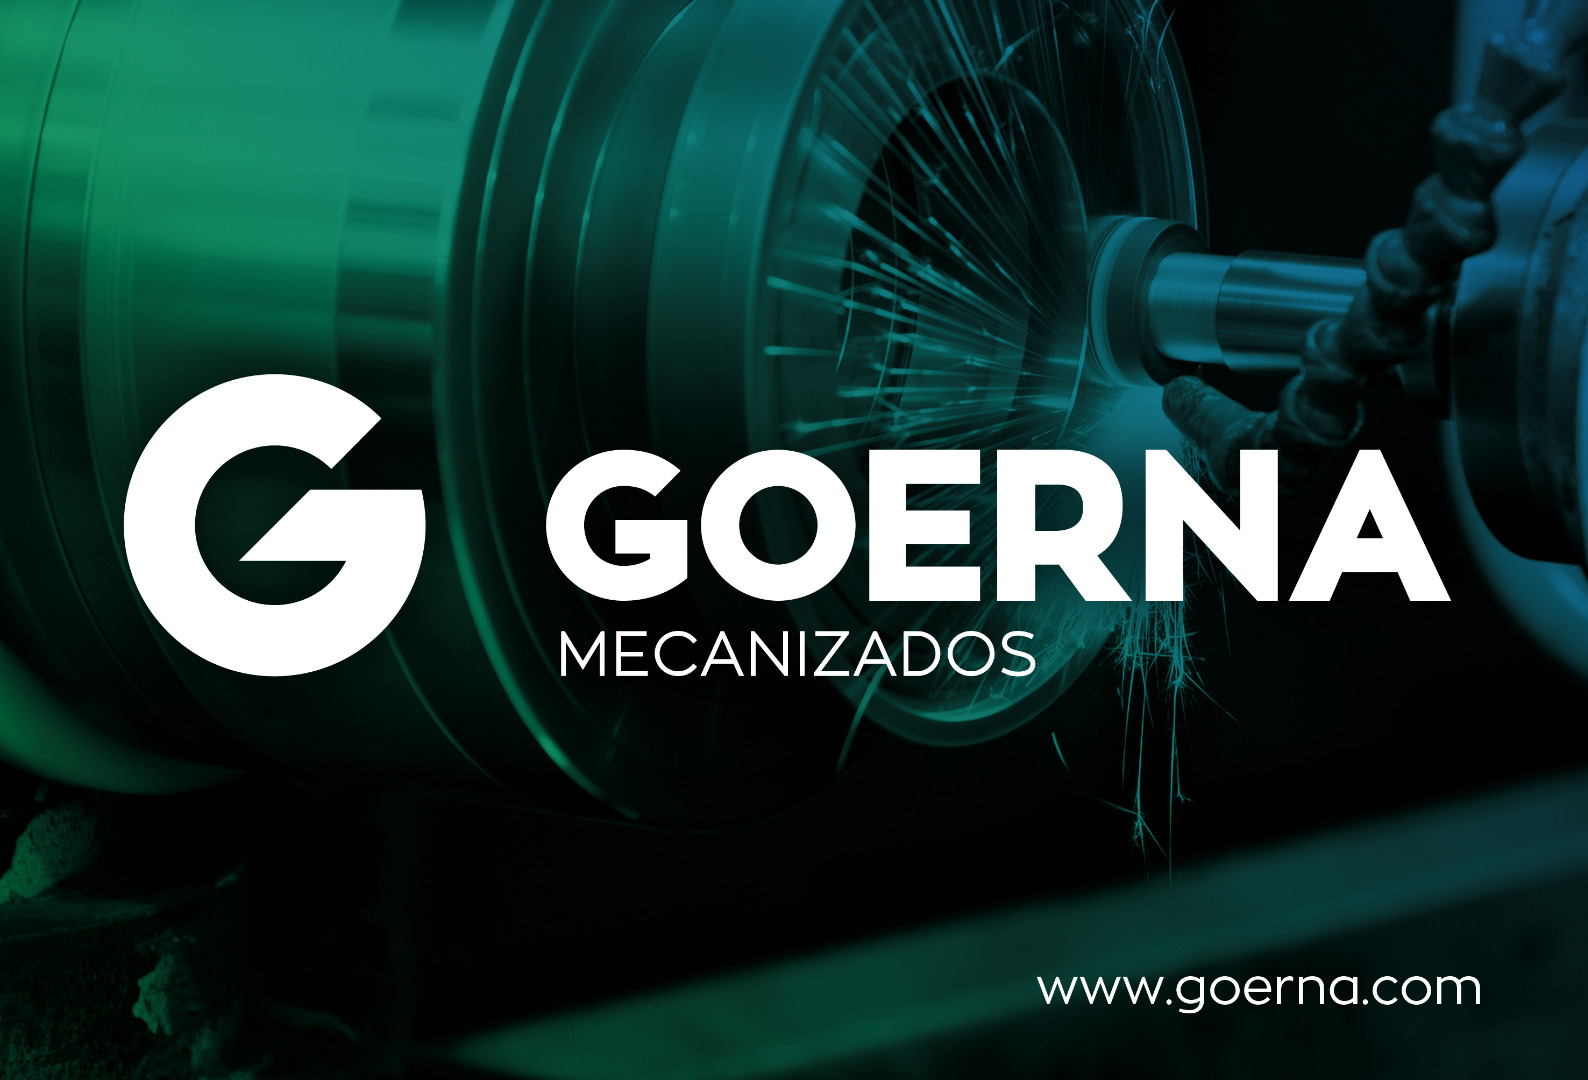 goerna about us